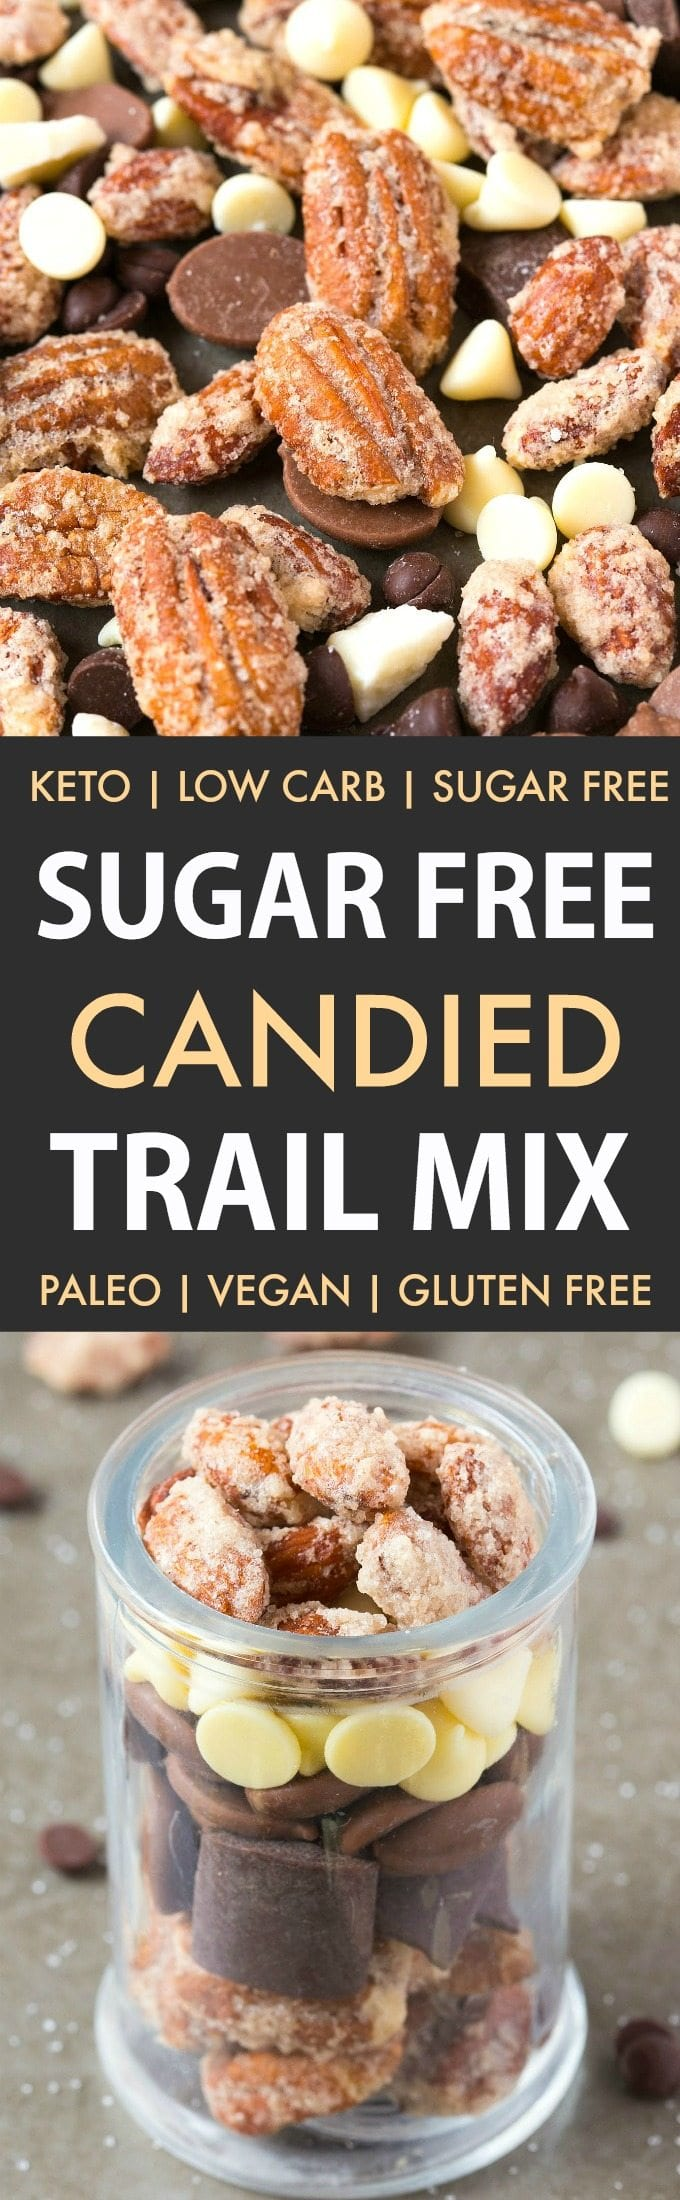 Sugar-Free Candied Trail Mix (Keto, Low Carb, Paleo)- Easy homemade candied trail mix made with zero sugar or oil- Perfect for holidays, gifts and every day guilt-free snacking! {vegan, gluten free, dairy free recipe}- #nuts #sugarfree #lowcarb #ketodessert #trailmix | Recipe on thebigmansworld.com